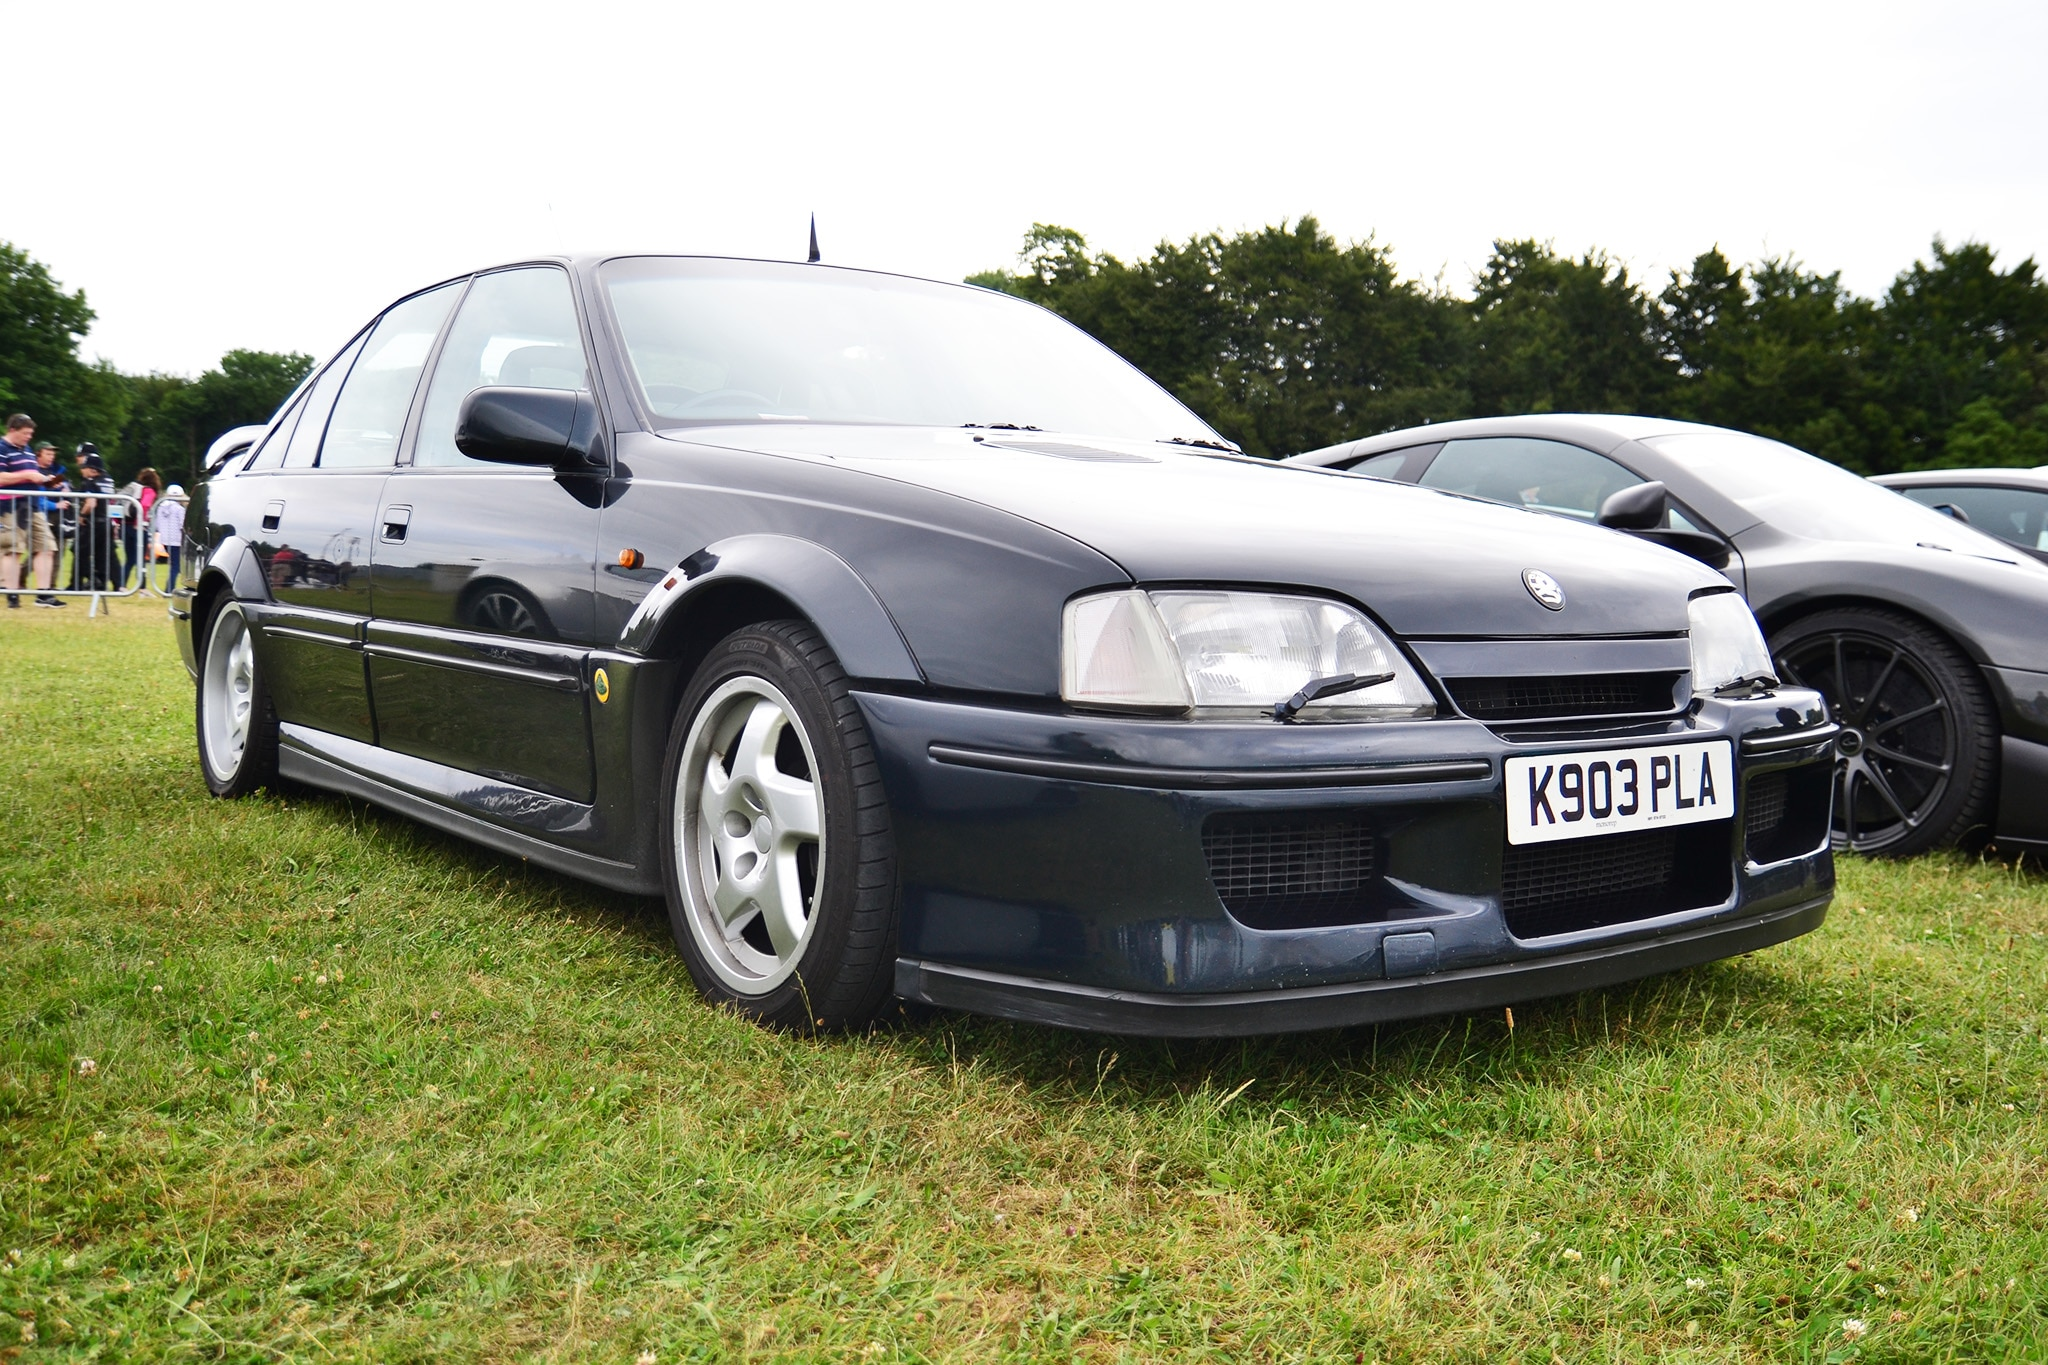 Lotus-Carlton-Goodwood Breathtaking Lotus Carlton for Sale Uk Cars Trend